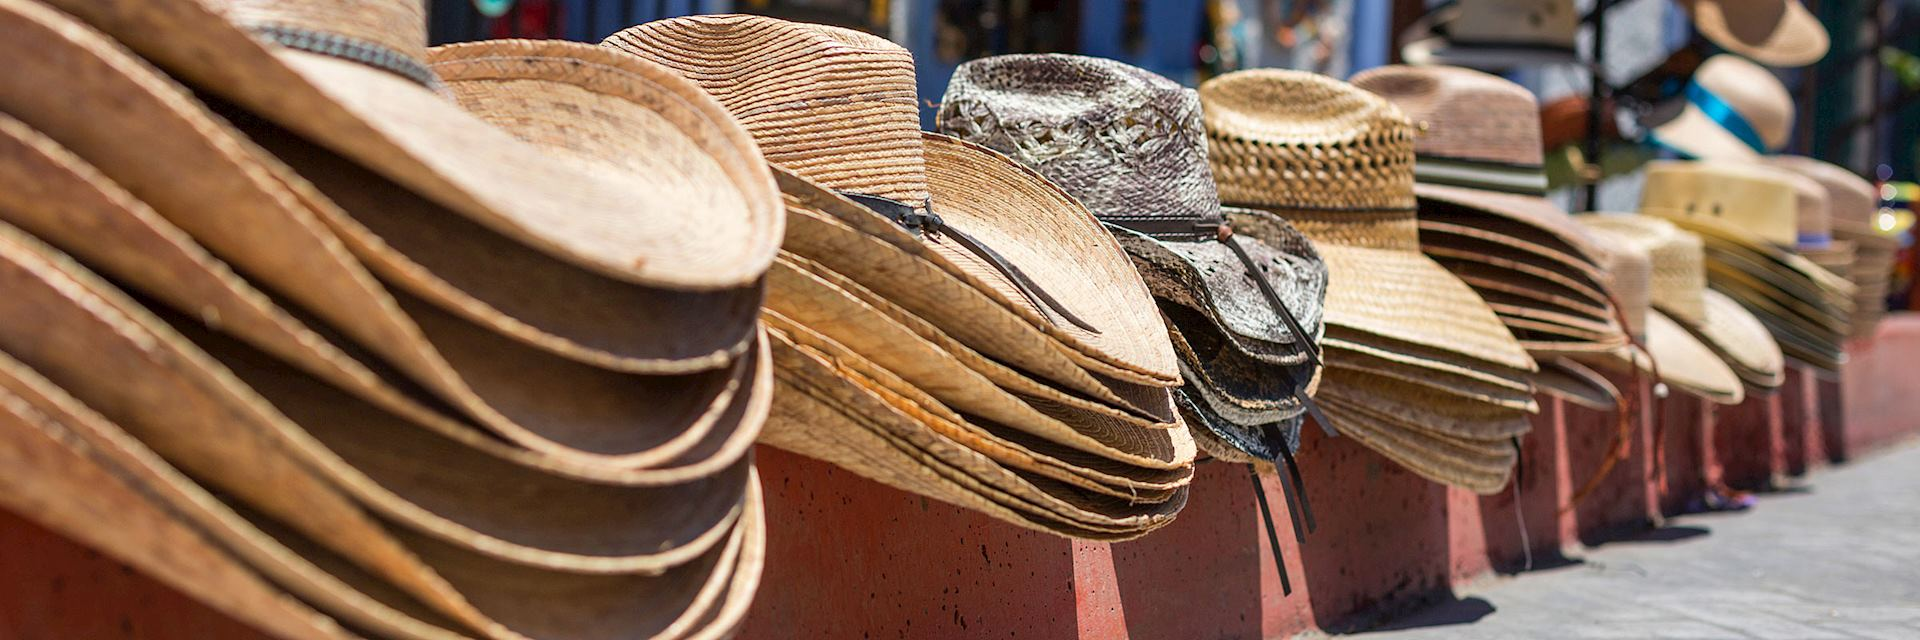 Hat stall in Todos Santos